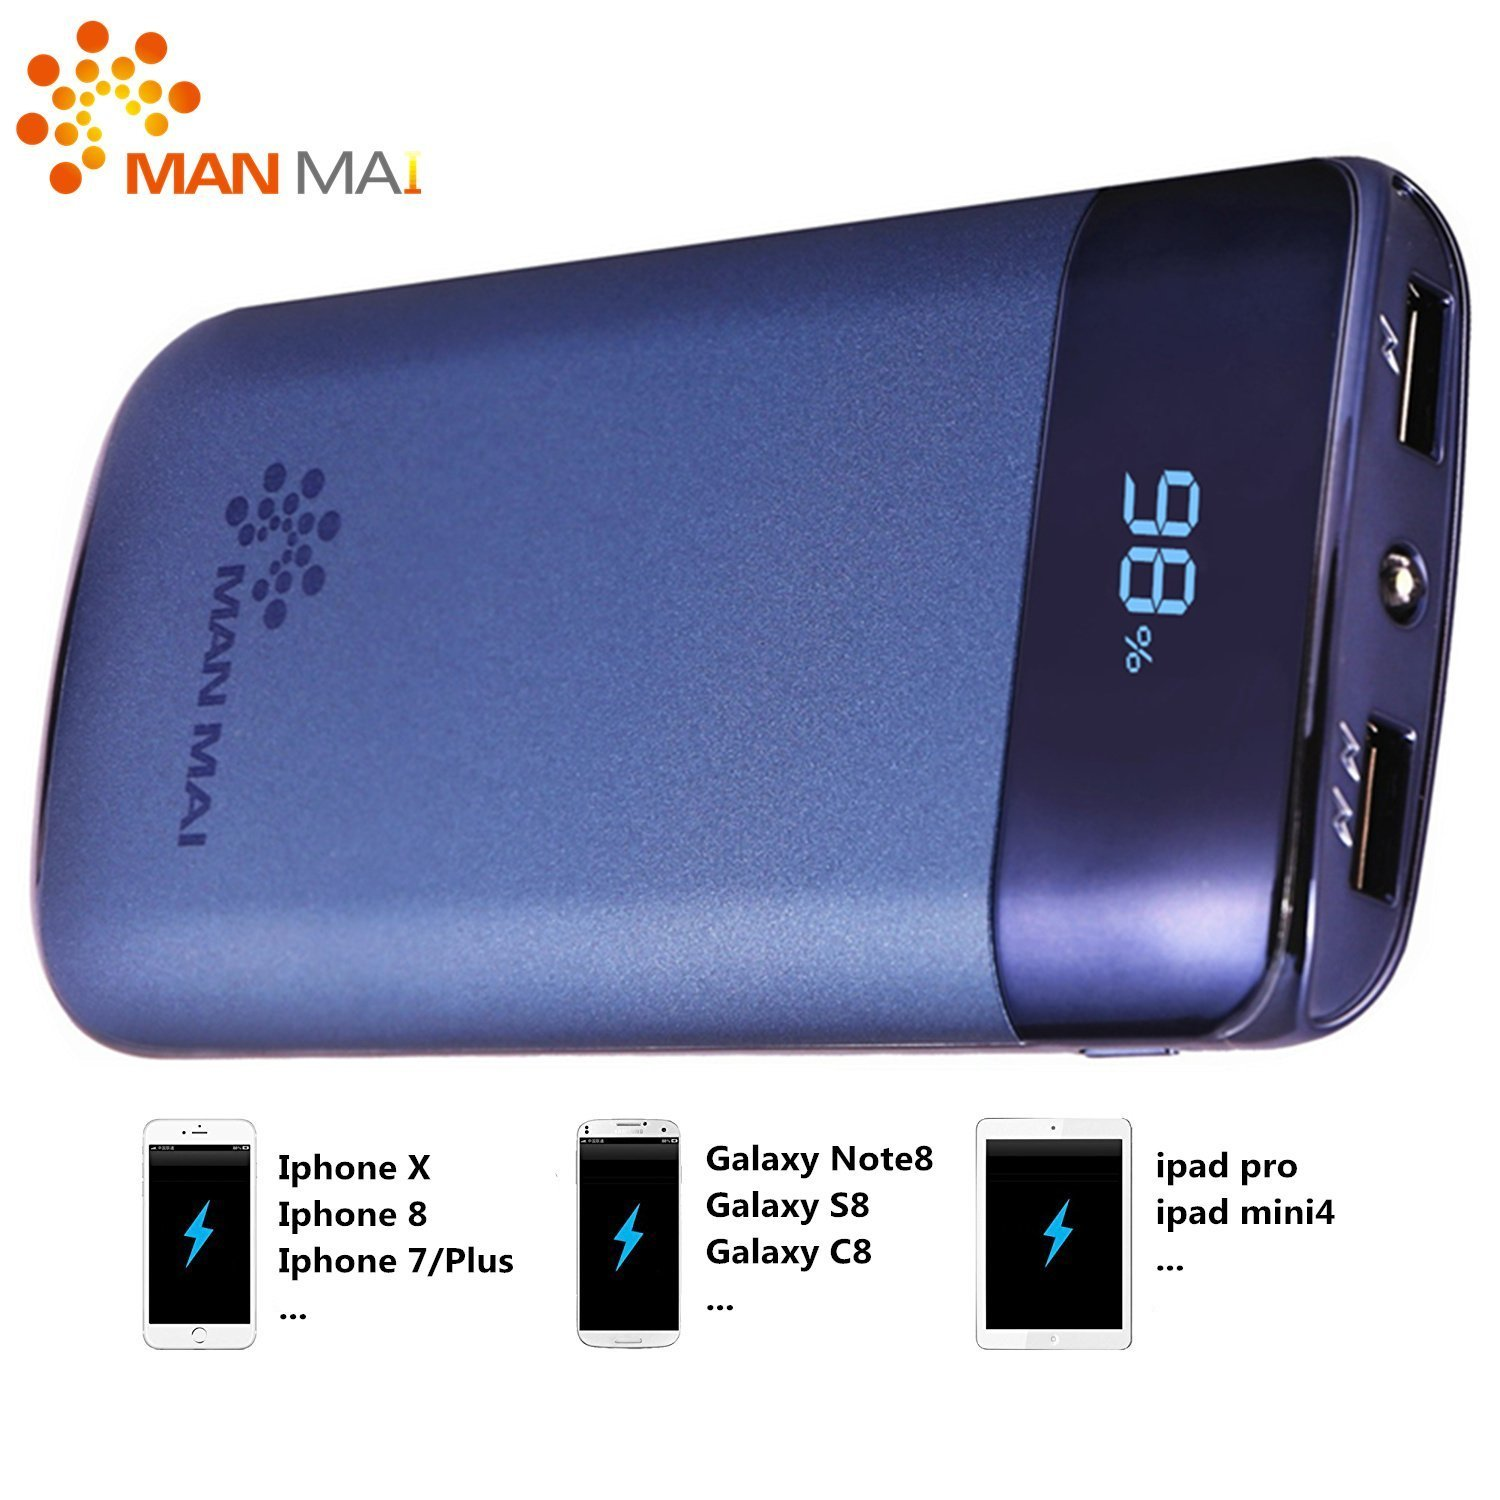 KUPPET 20000mAh Power Bank (Dual USB Port, 3.1A Total) External Portable Charger Battery Pack Portable Charger with LED Flashlight for iPhone 8/7,iPhone X,iPad Pro, Galaxy S8 Note8 and More KAPPET KUPPET002